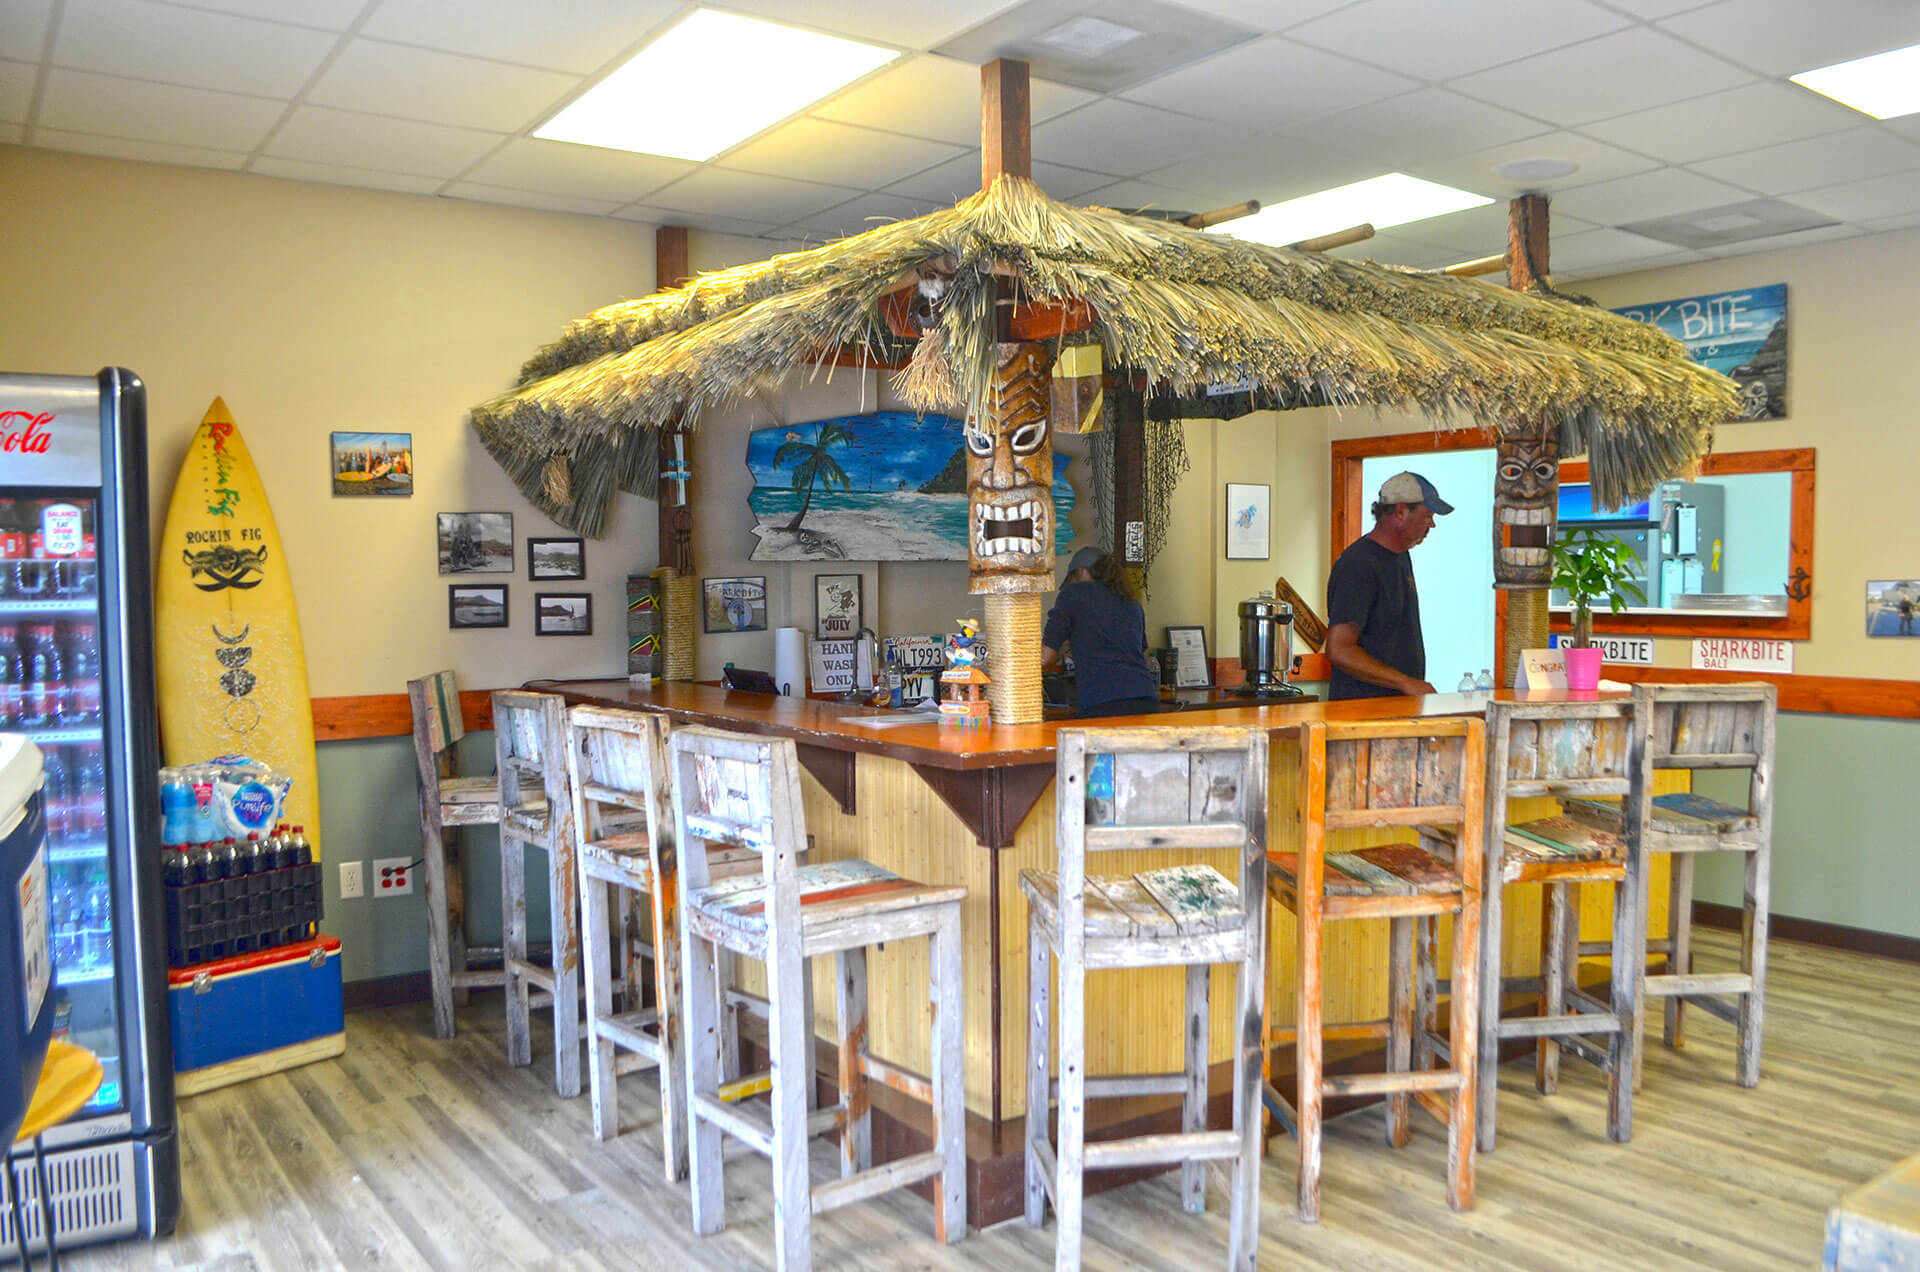 Shark Bite's hut in Fort Walton Beach